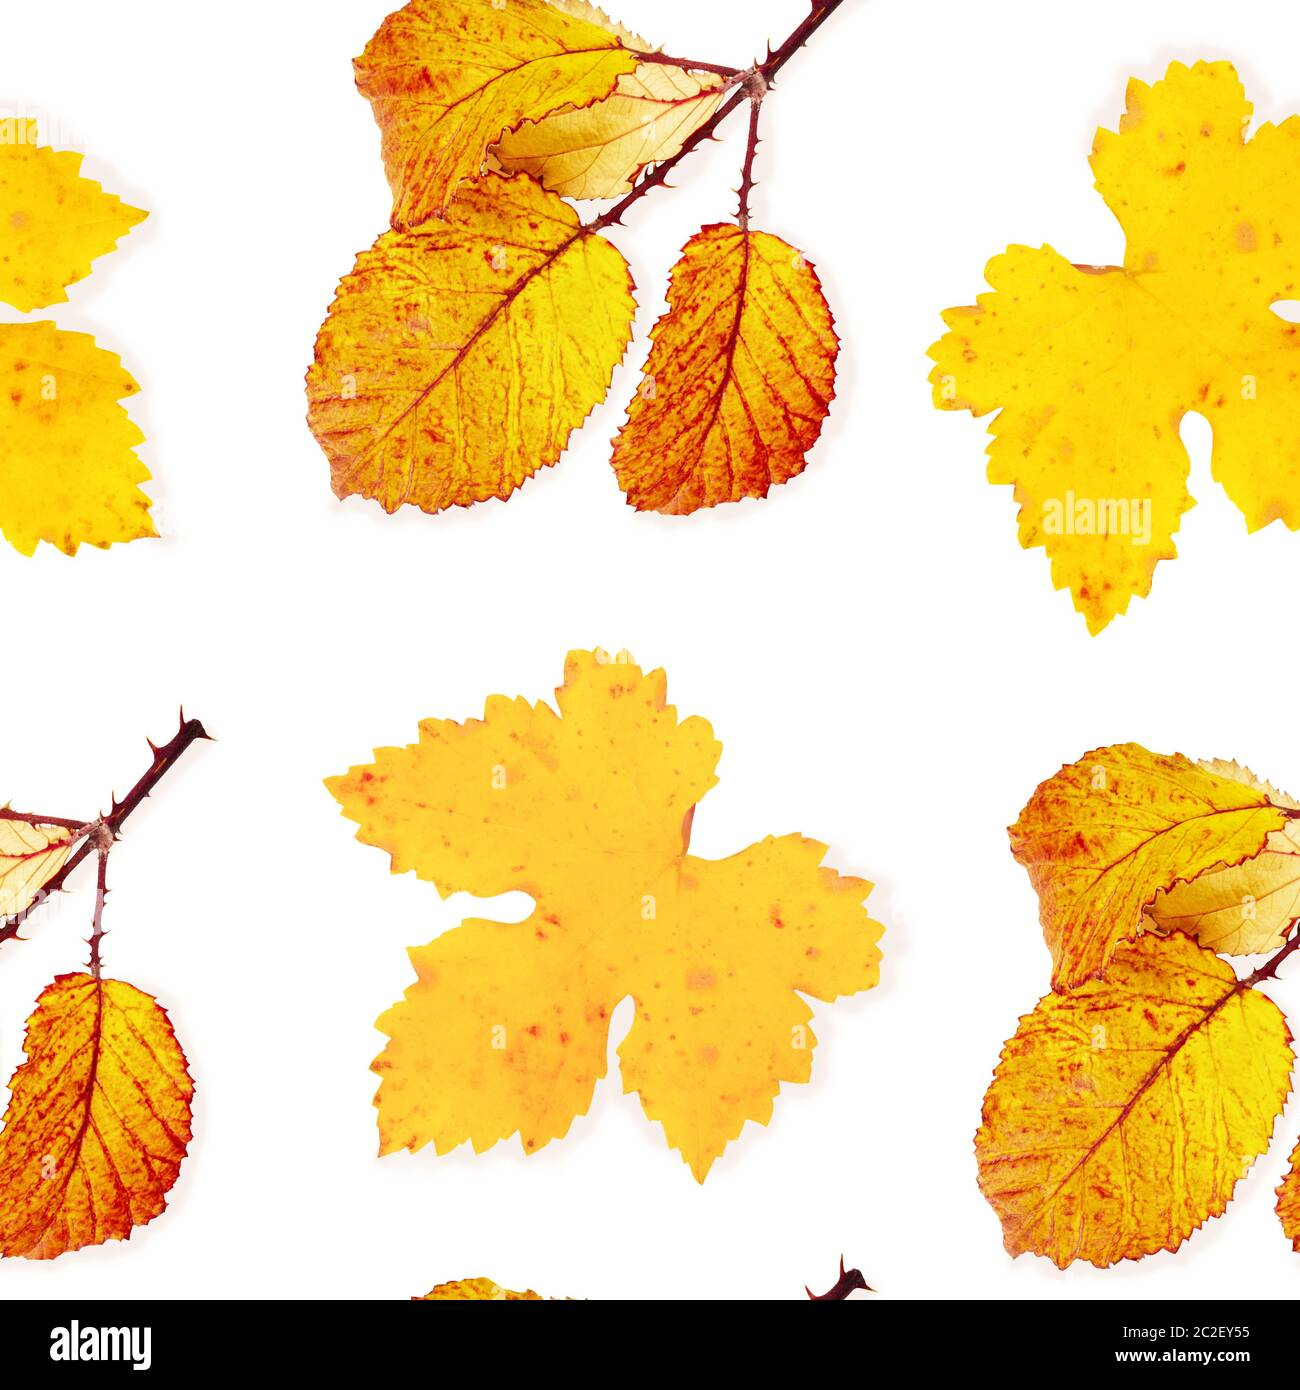 A seamless autumn pattern of yellow and orange fall leaves on a white background, a vibrant repeat print Stock Photo